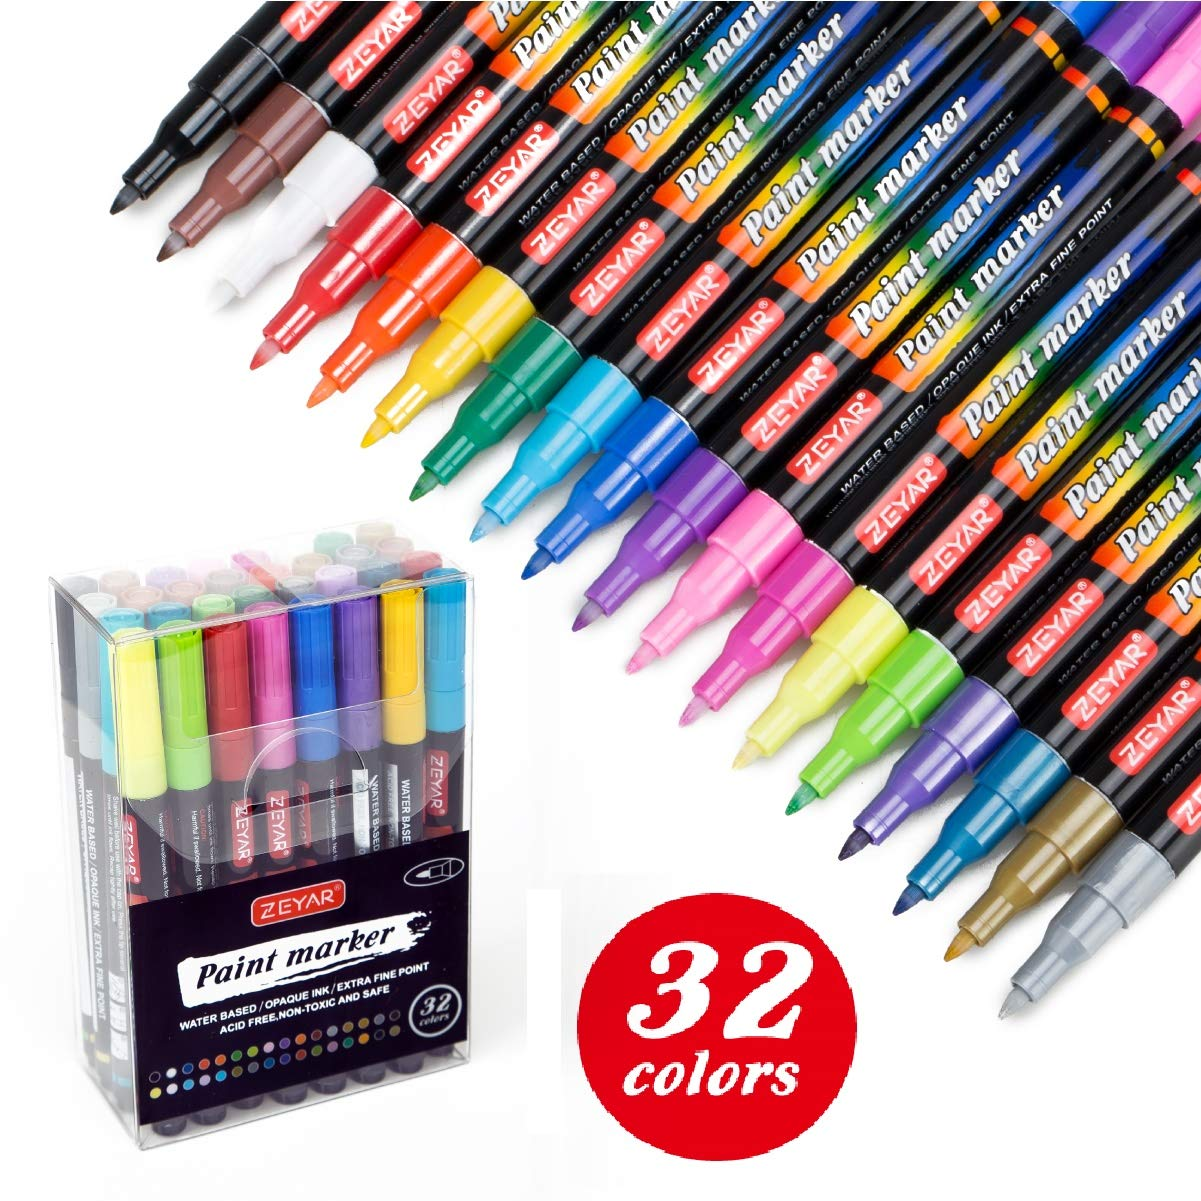 ZEYAR Acrylic Paint Pens, Water based, Extra Fine Point, 32 vibrant colors, Paint Markers for Glass, Rock, Paper, Ceramic, Plastic and Non porous surfaces, Opaque Ink, Professional Marker Manufacturer